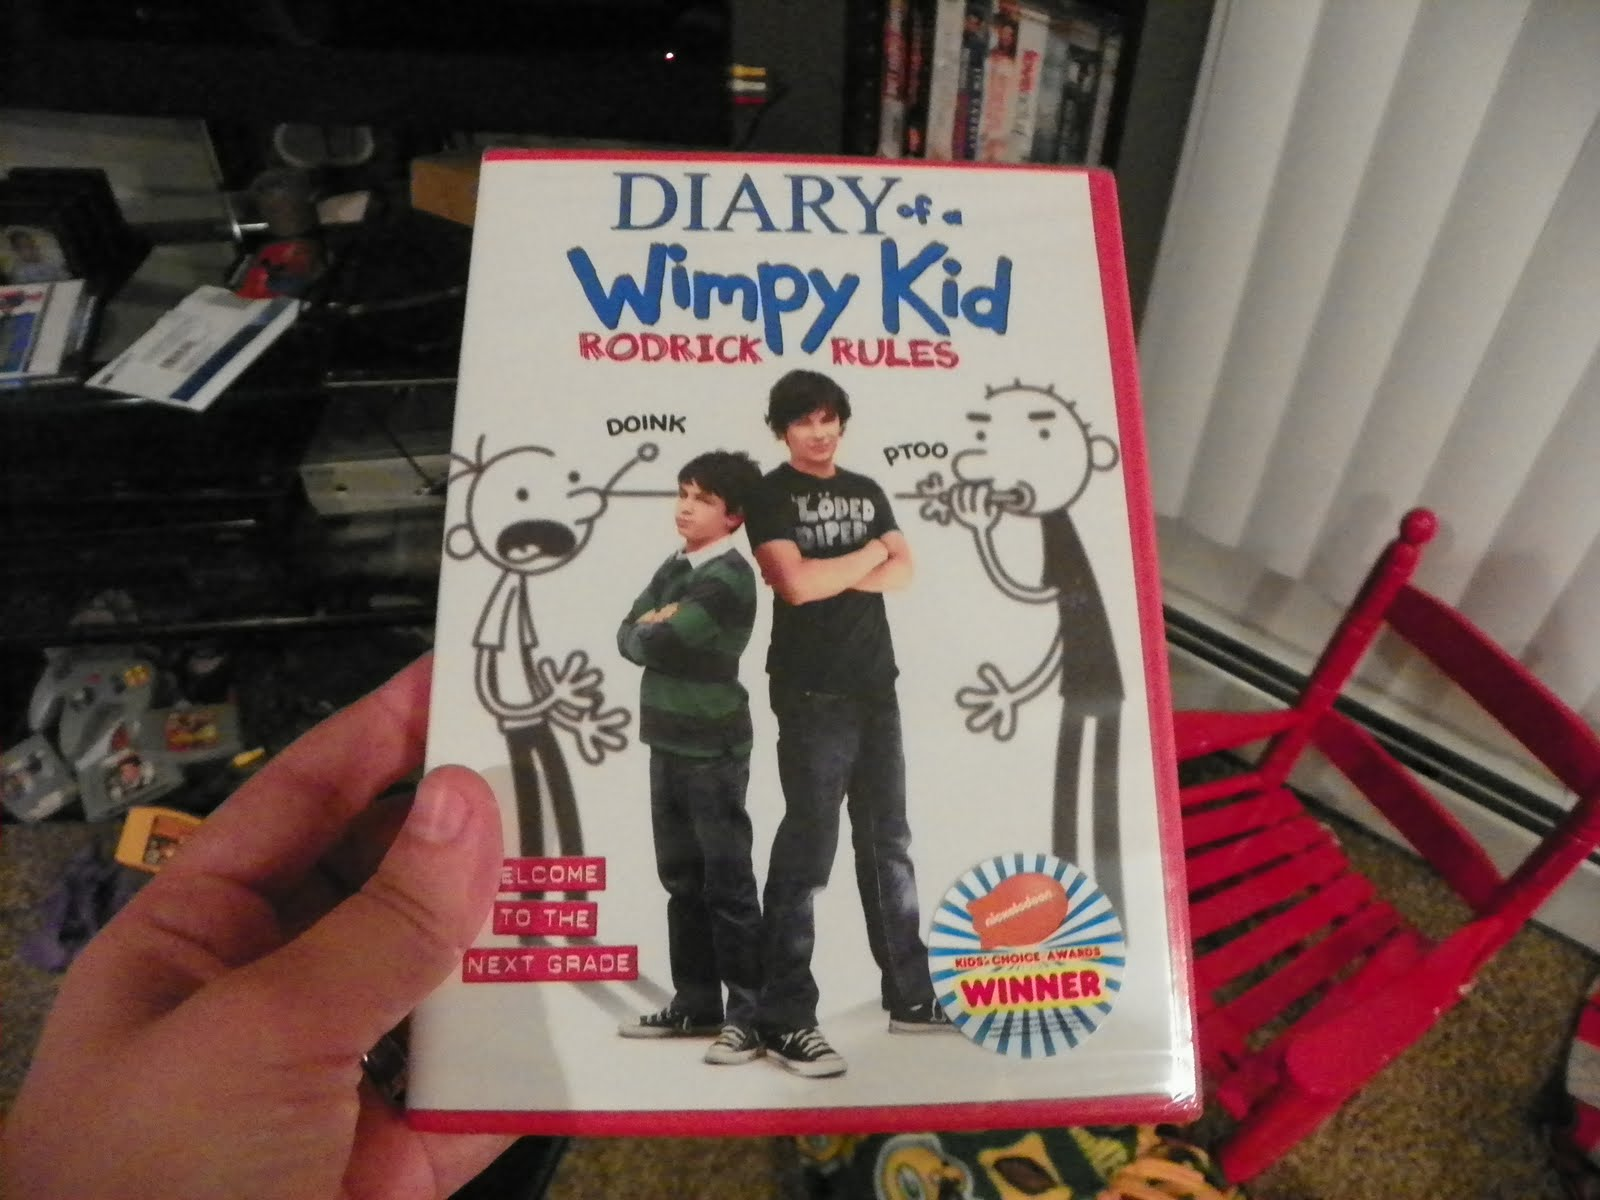 diary of a wimpy kid 2 rodrick rules book report Read diary of a wimpy kid: rodrick rules reviews from parents on common sense media report this review i'm also a fan of diary of wimpy kid books.